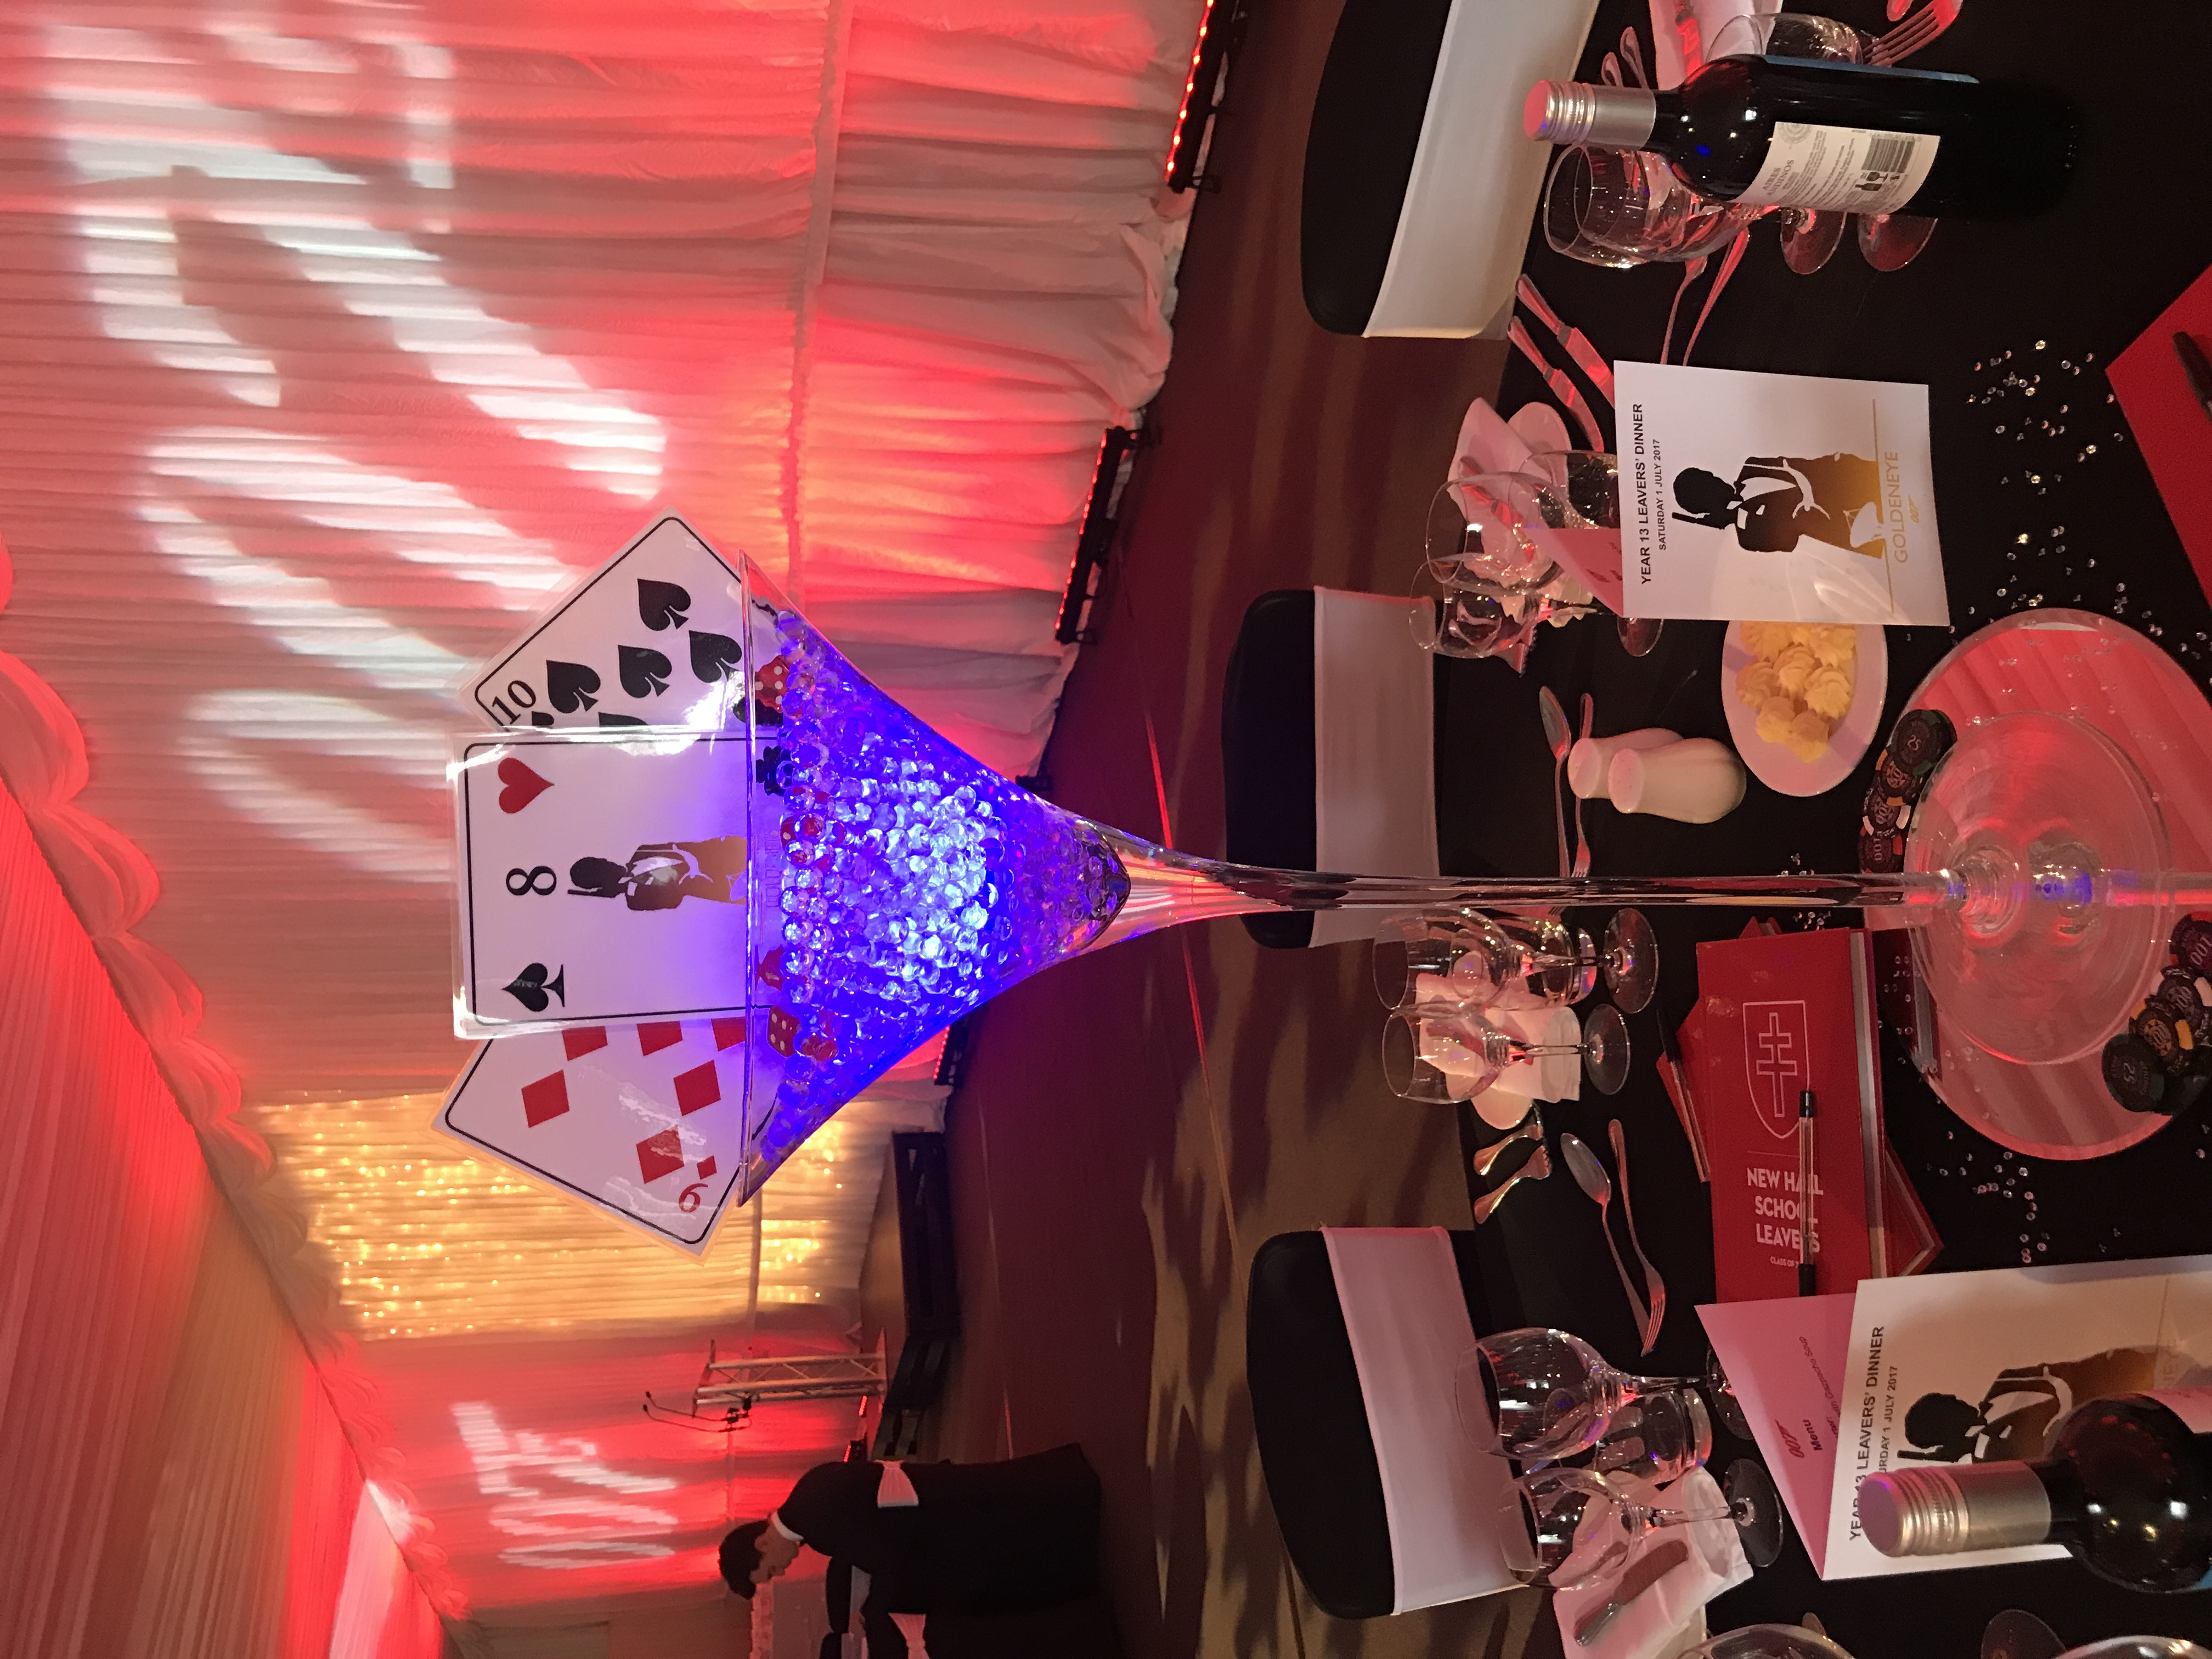 Casino Themed Event Venue Decor Hire in Hetfordshire, Bedfordshire, Buckinghamshire, Essex & London